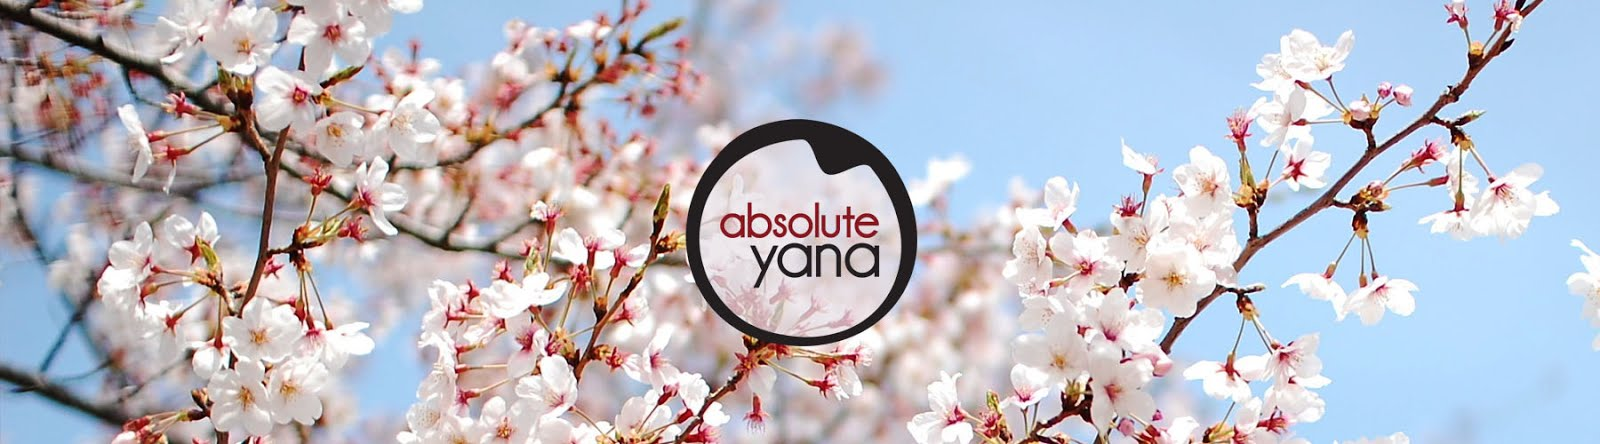 Absolute Yana